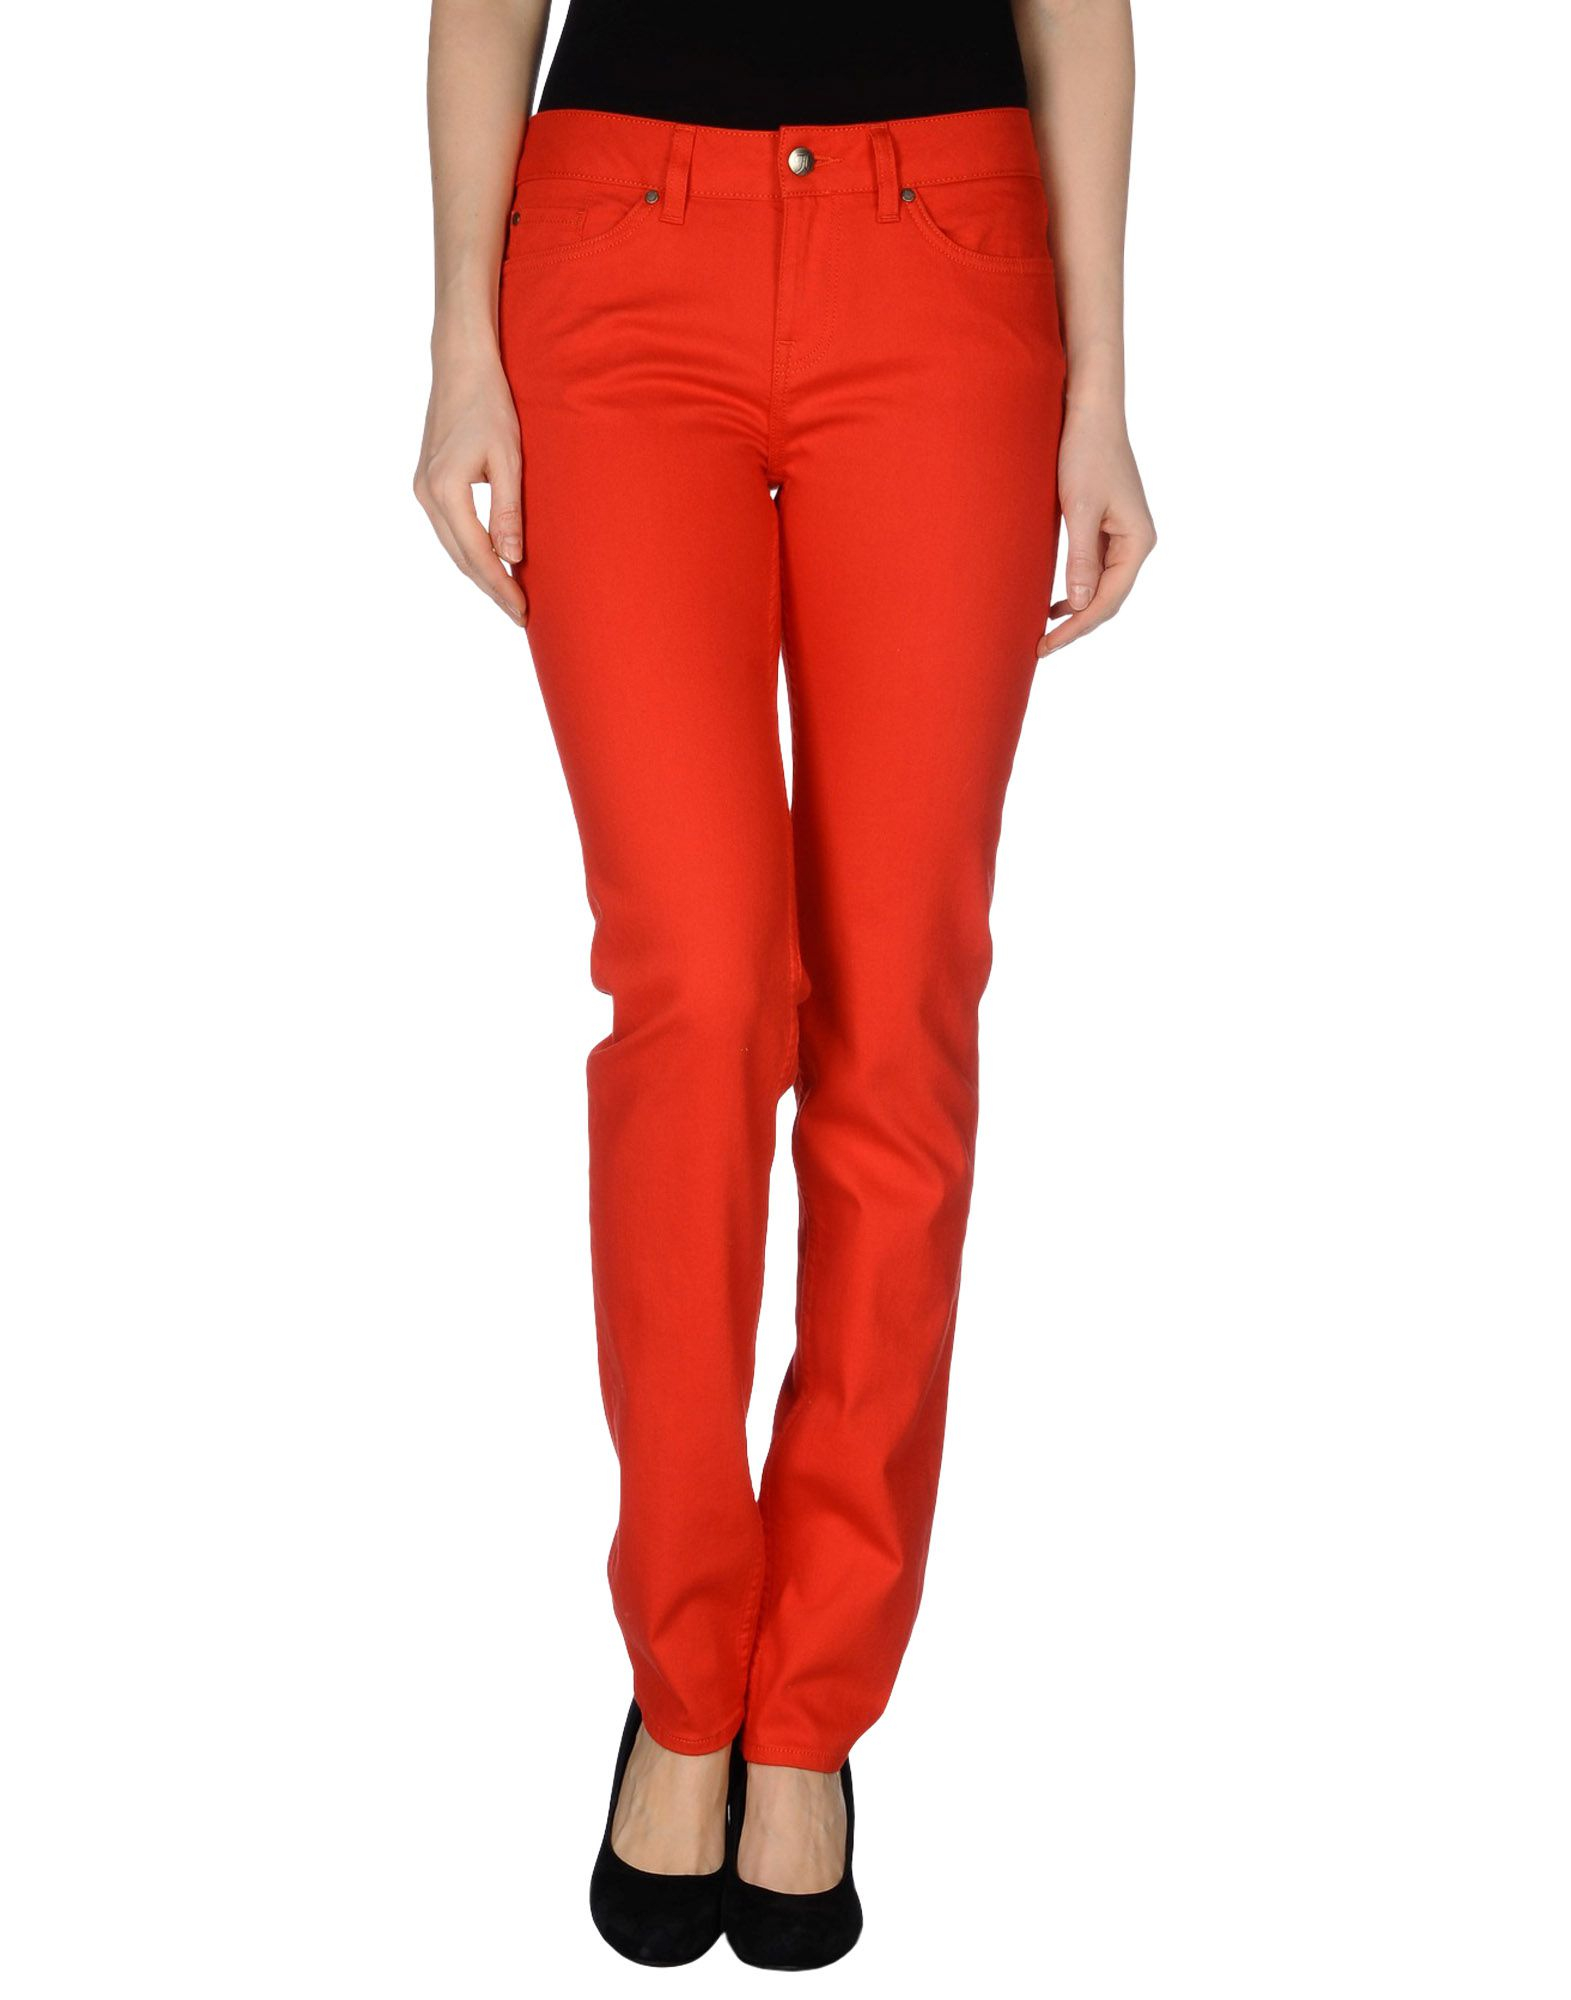 Unique Tommy Hilfiger Pants In 67568 For Women 2440 On Tommy Hilfiger